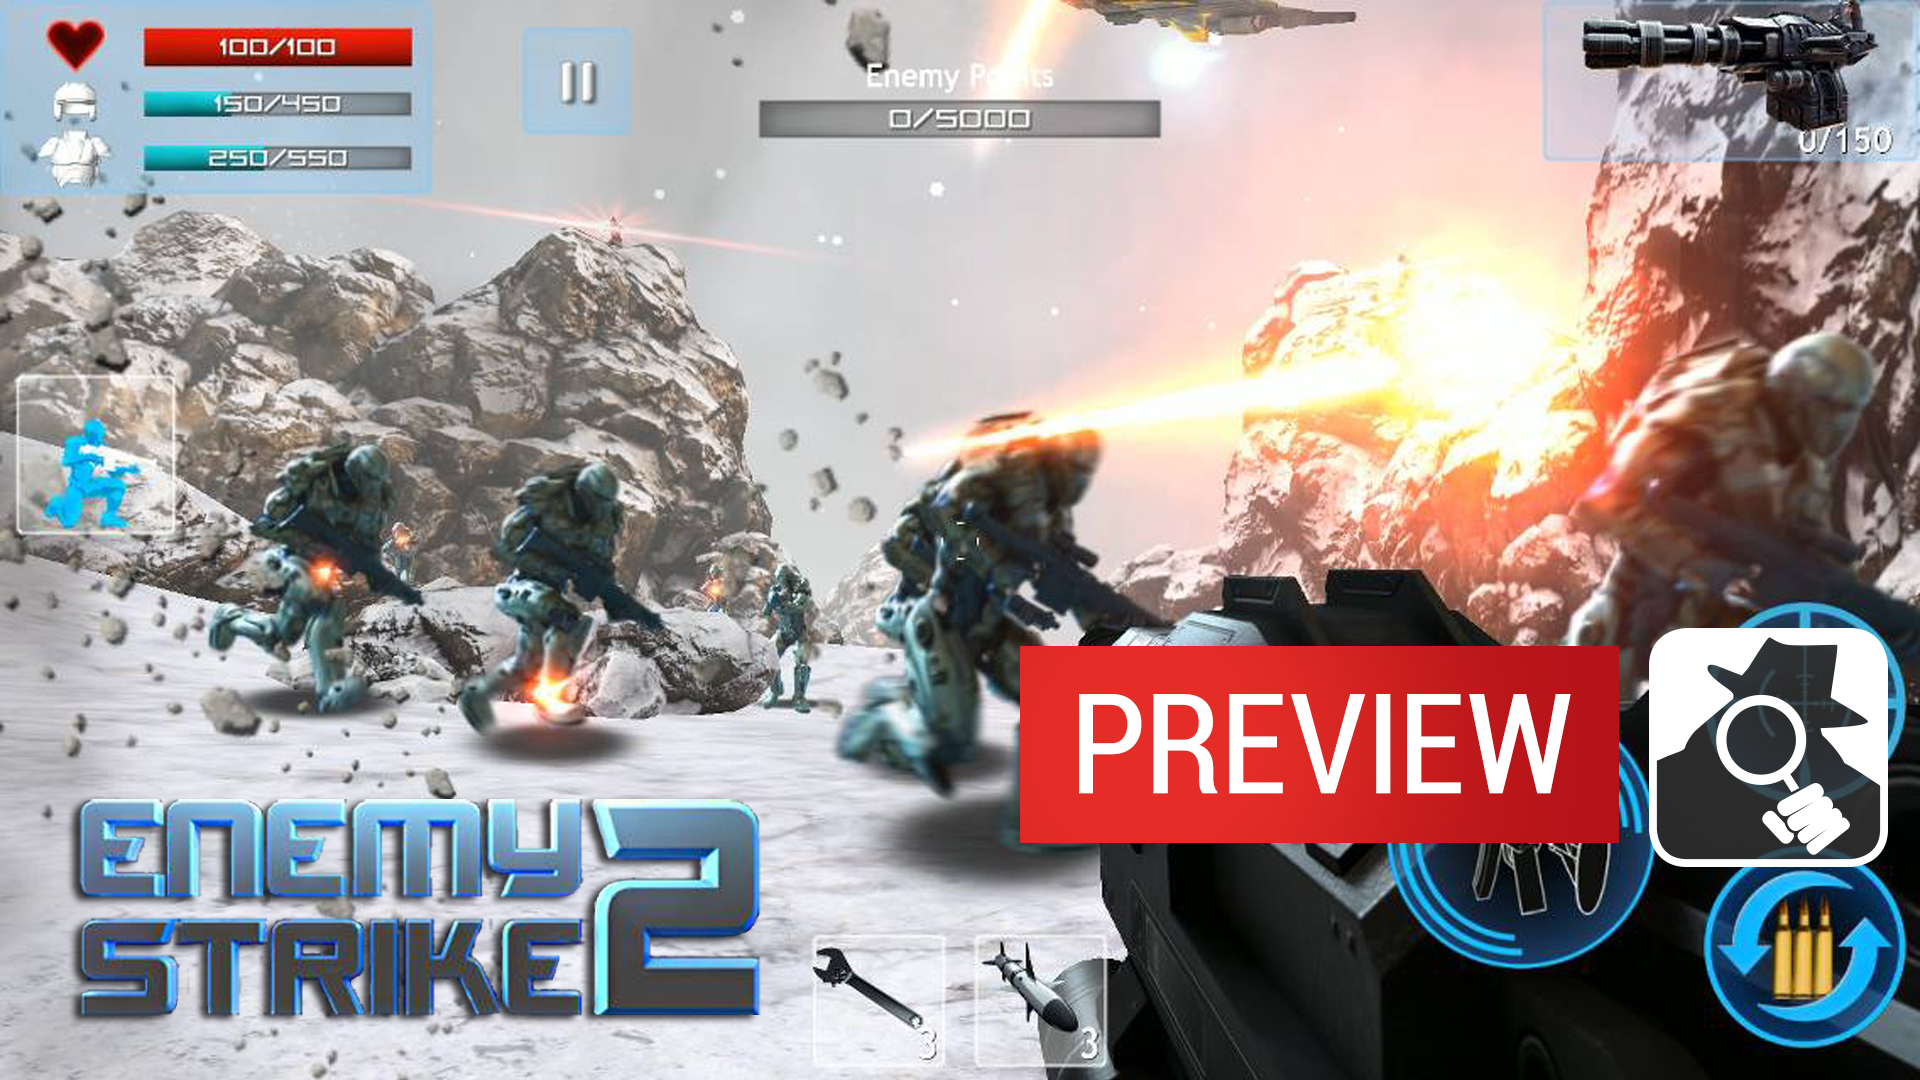 Video Preview: Enemy Strike 2 launches 11 November with more enemies and more strikes